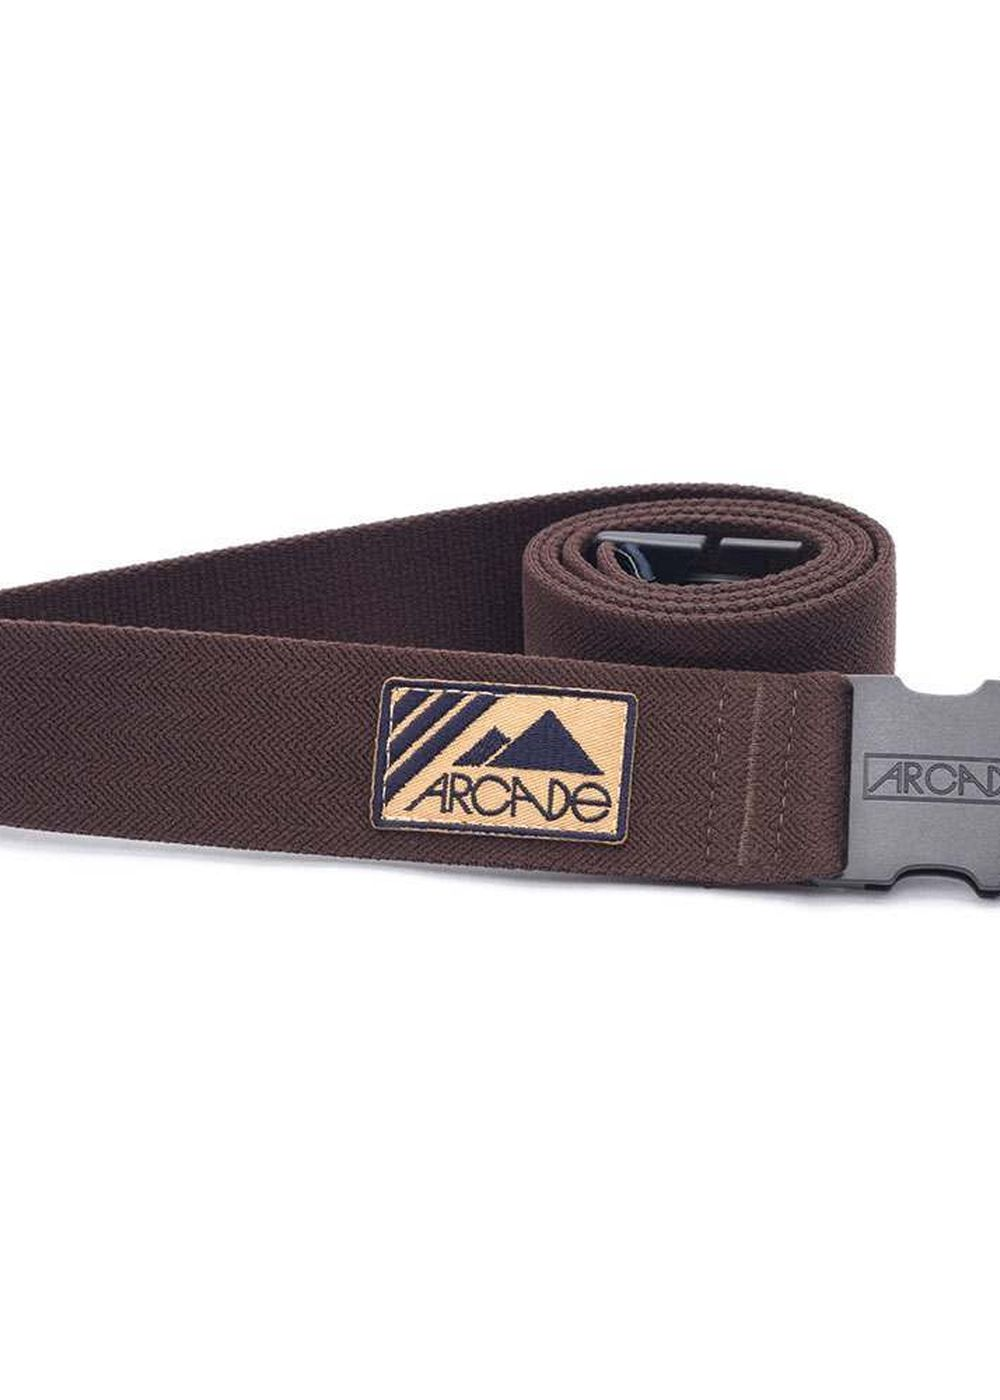 arcade belts the mustang brown